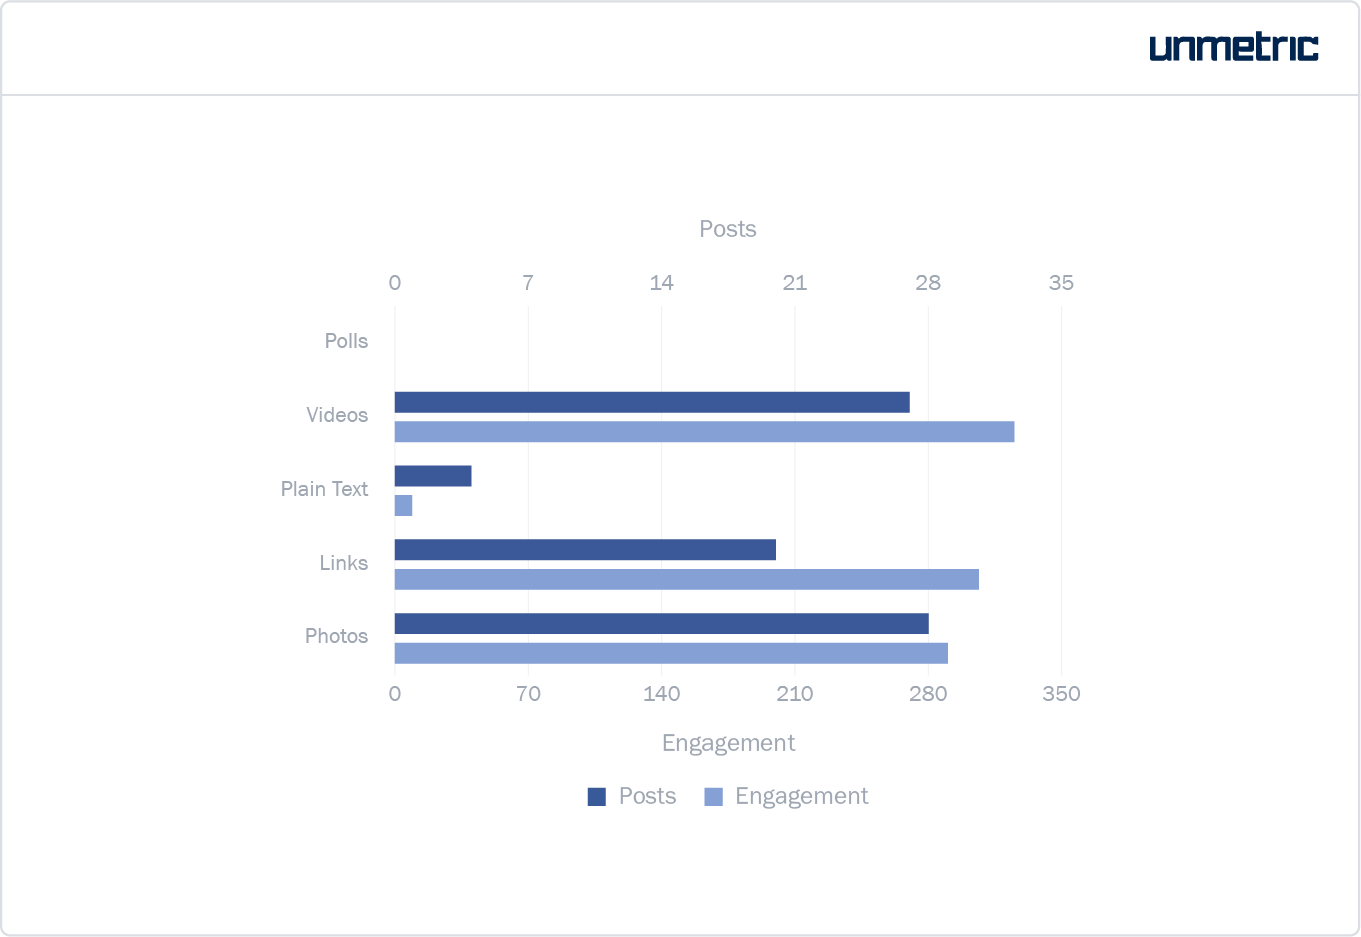 Number of interactions and posts per content type